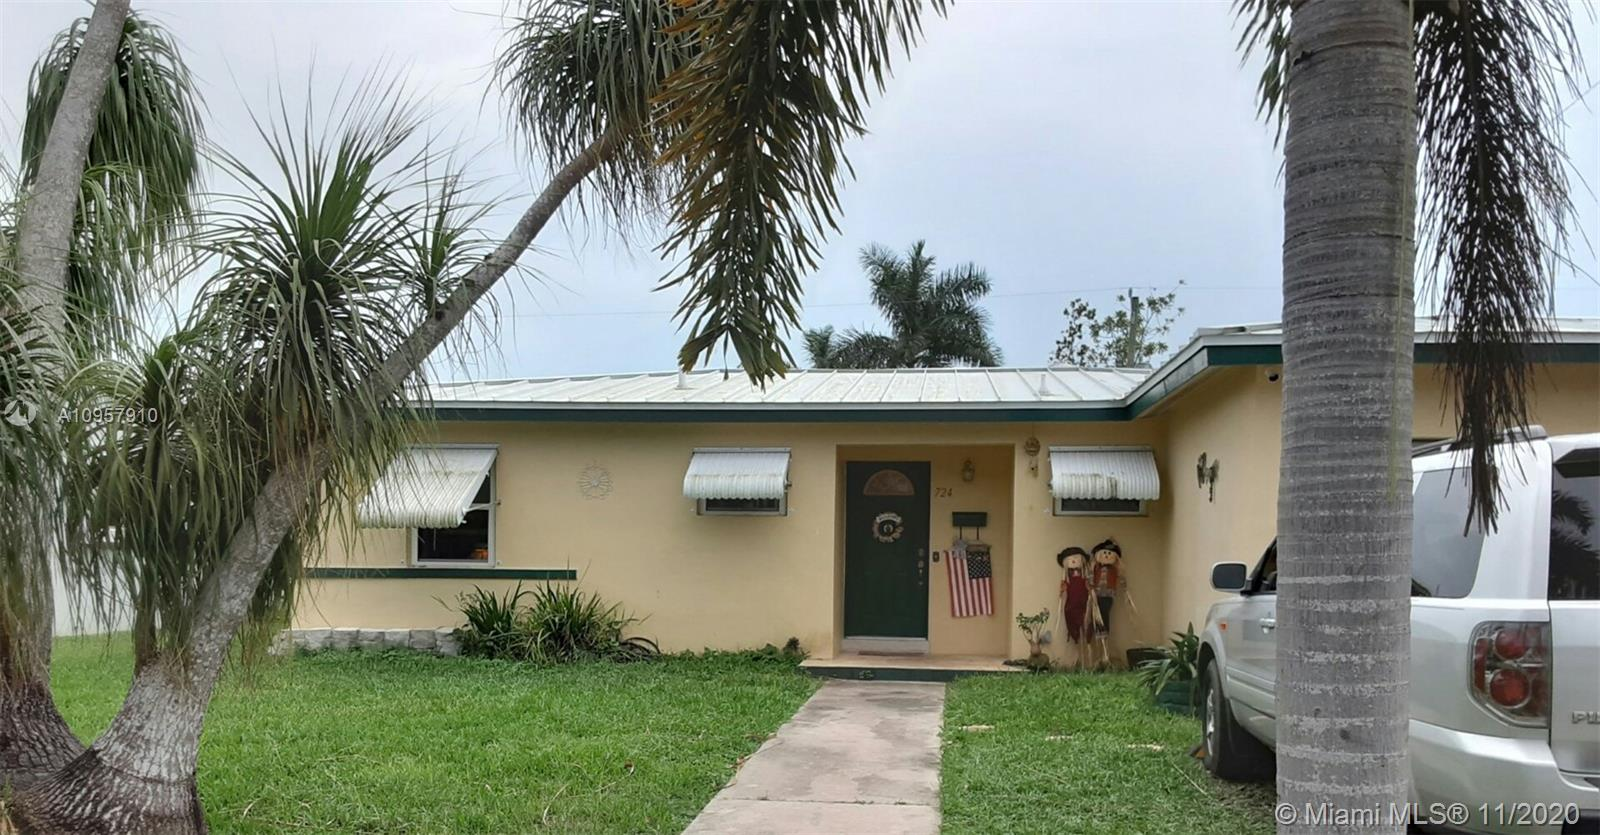 Reduced 3 Bedroom 2 bath 1354 sq ft incl. a 1/1 in law has side ddoo. New kitchen with stainless steel appliances. Terrazzo floors. Metal roof installed 2018. Chain link fenced large backyard with tall Cherry hegde, & fruit bearing mature trees: Hog Plum (Ciruela), Lime, and Sour Sop (Guanavana) shed.  Excellent neighborhood with 2 parks within walking distance. Close to Campbell Drive, Krome, Wells Fargo bank, 